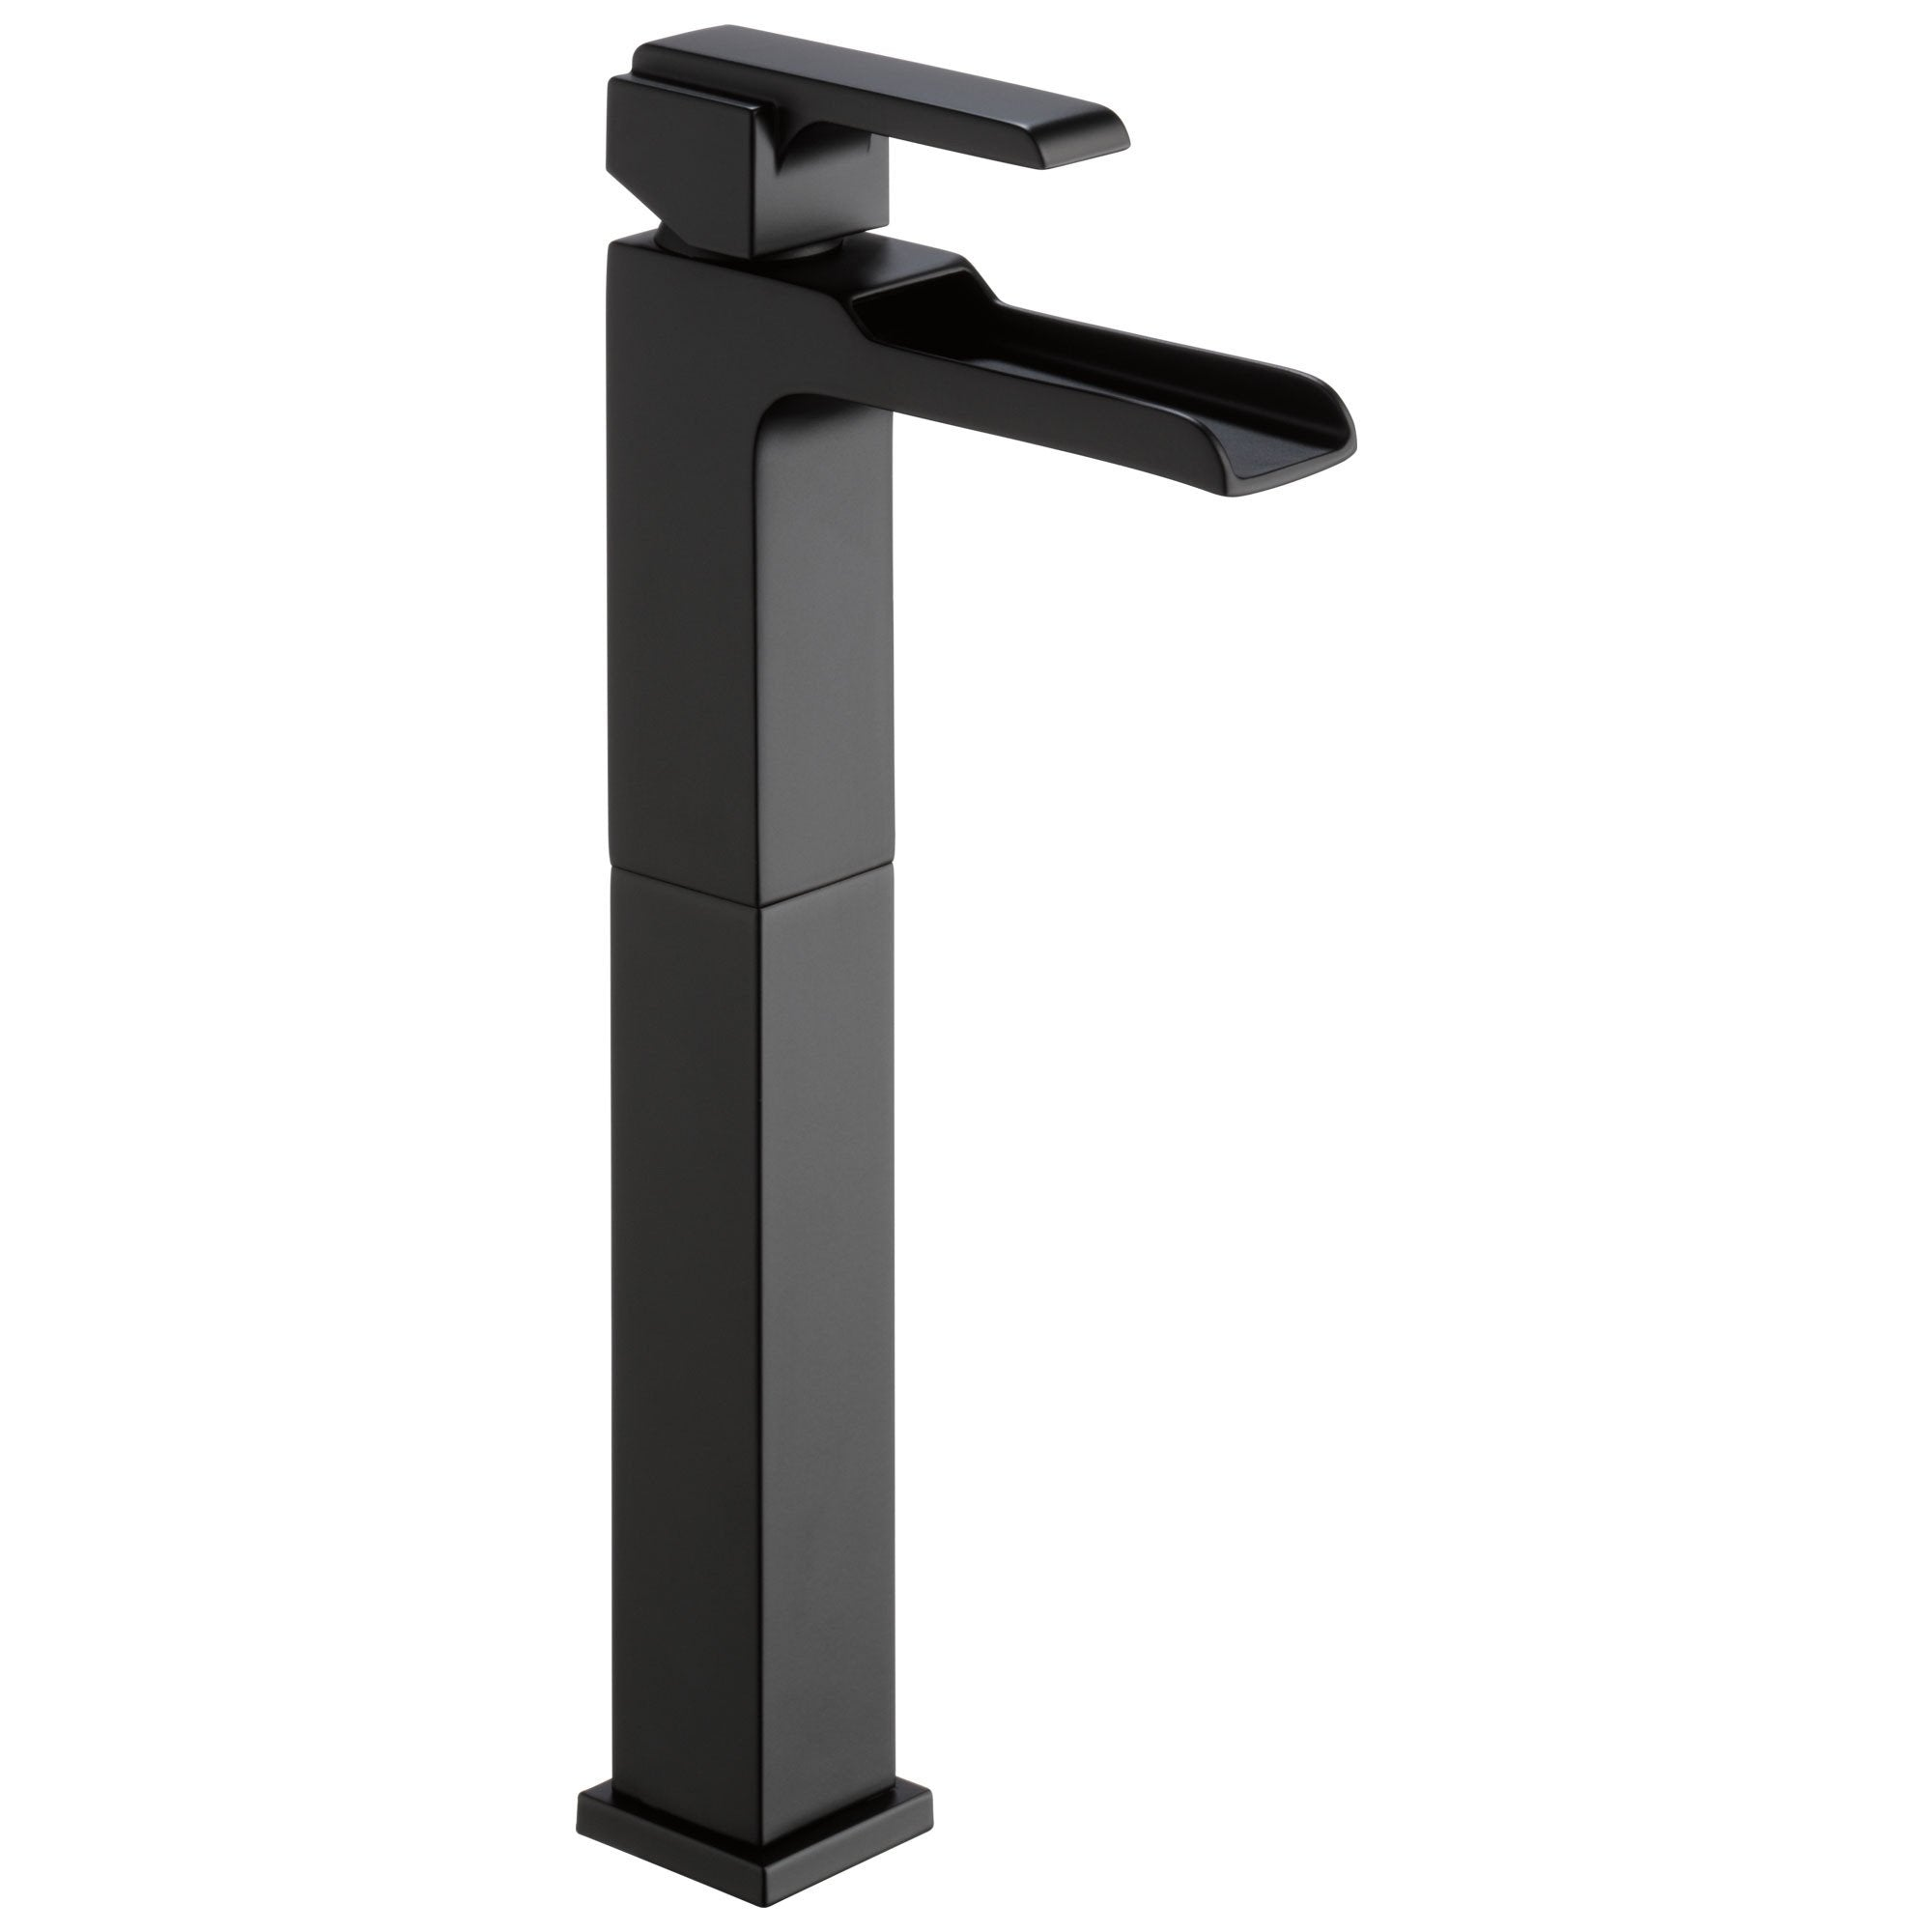 Delta Ara Collection Matte Black Finish Single Handle Tall Vessel Bathroom Lavatory Sink Faucet with Channel Spout D768LFBL